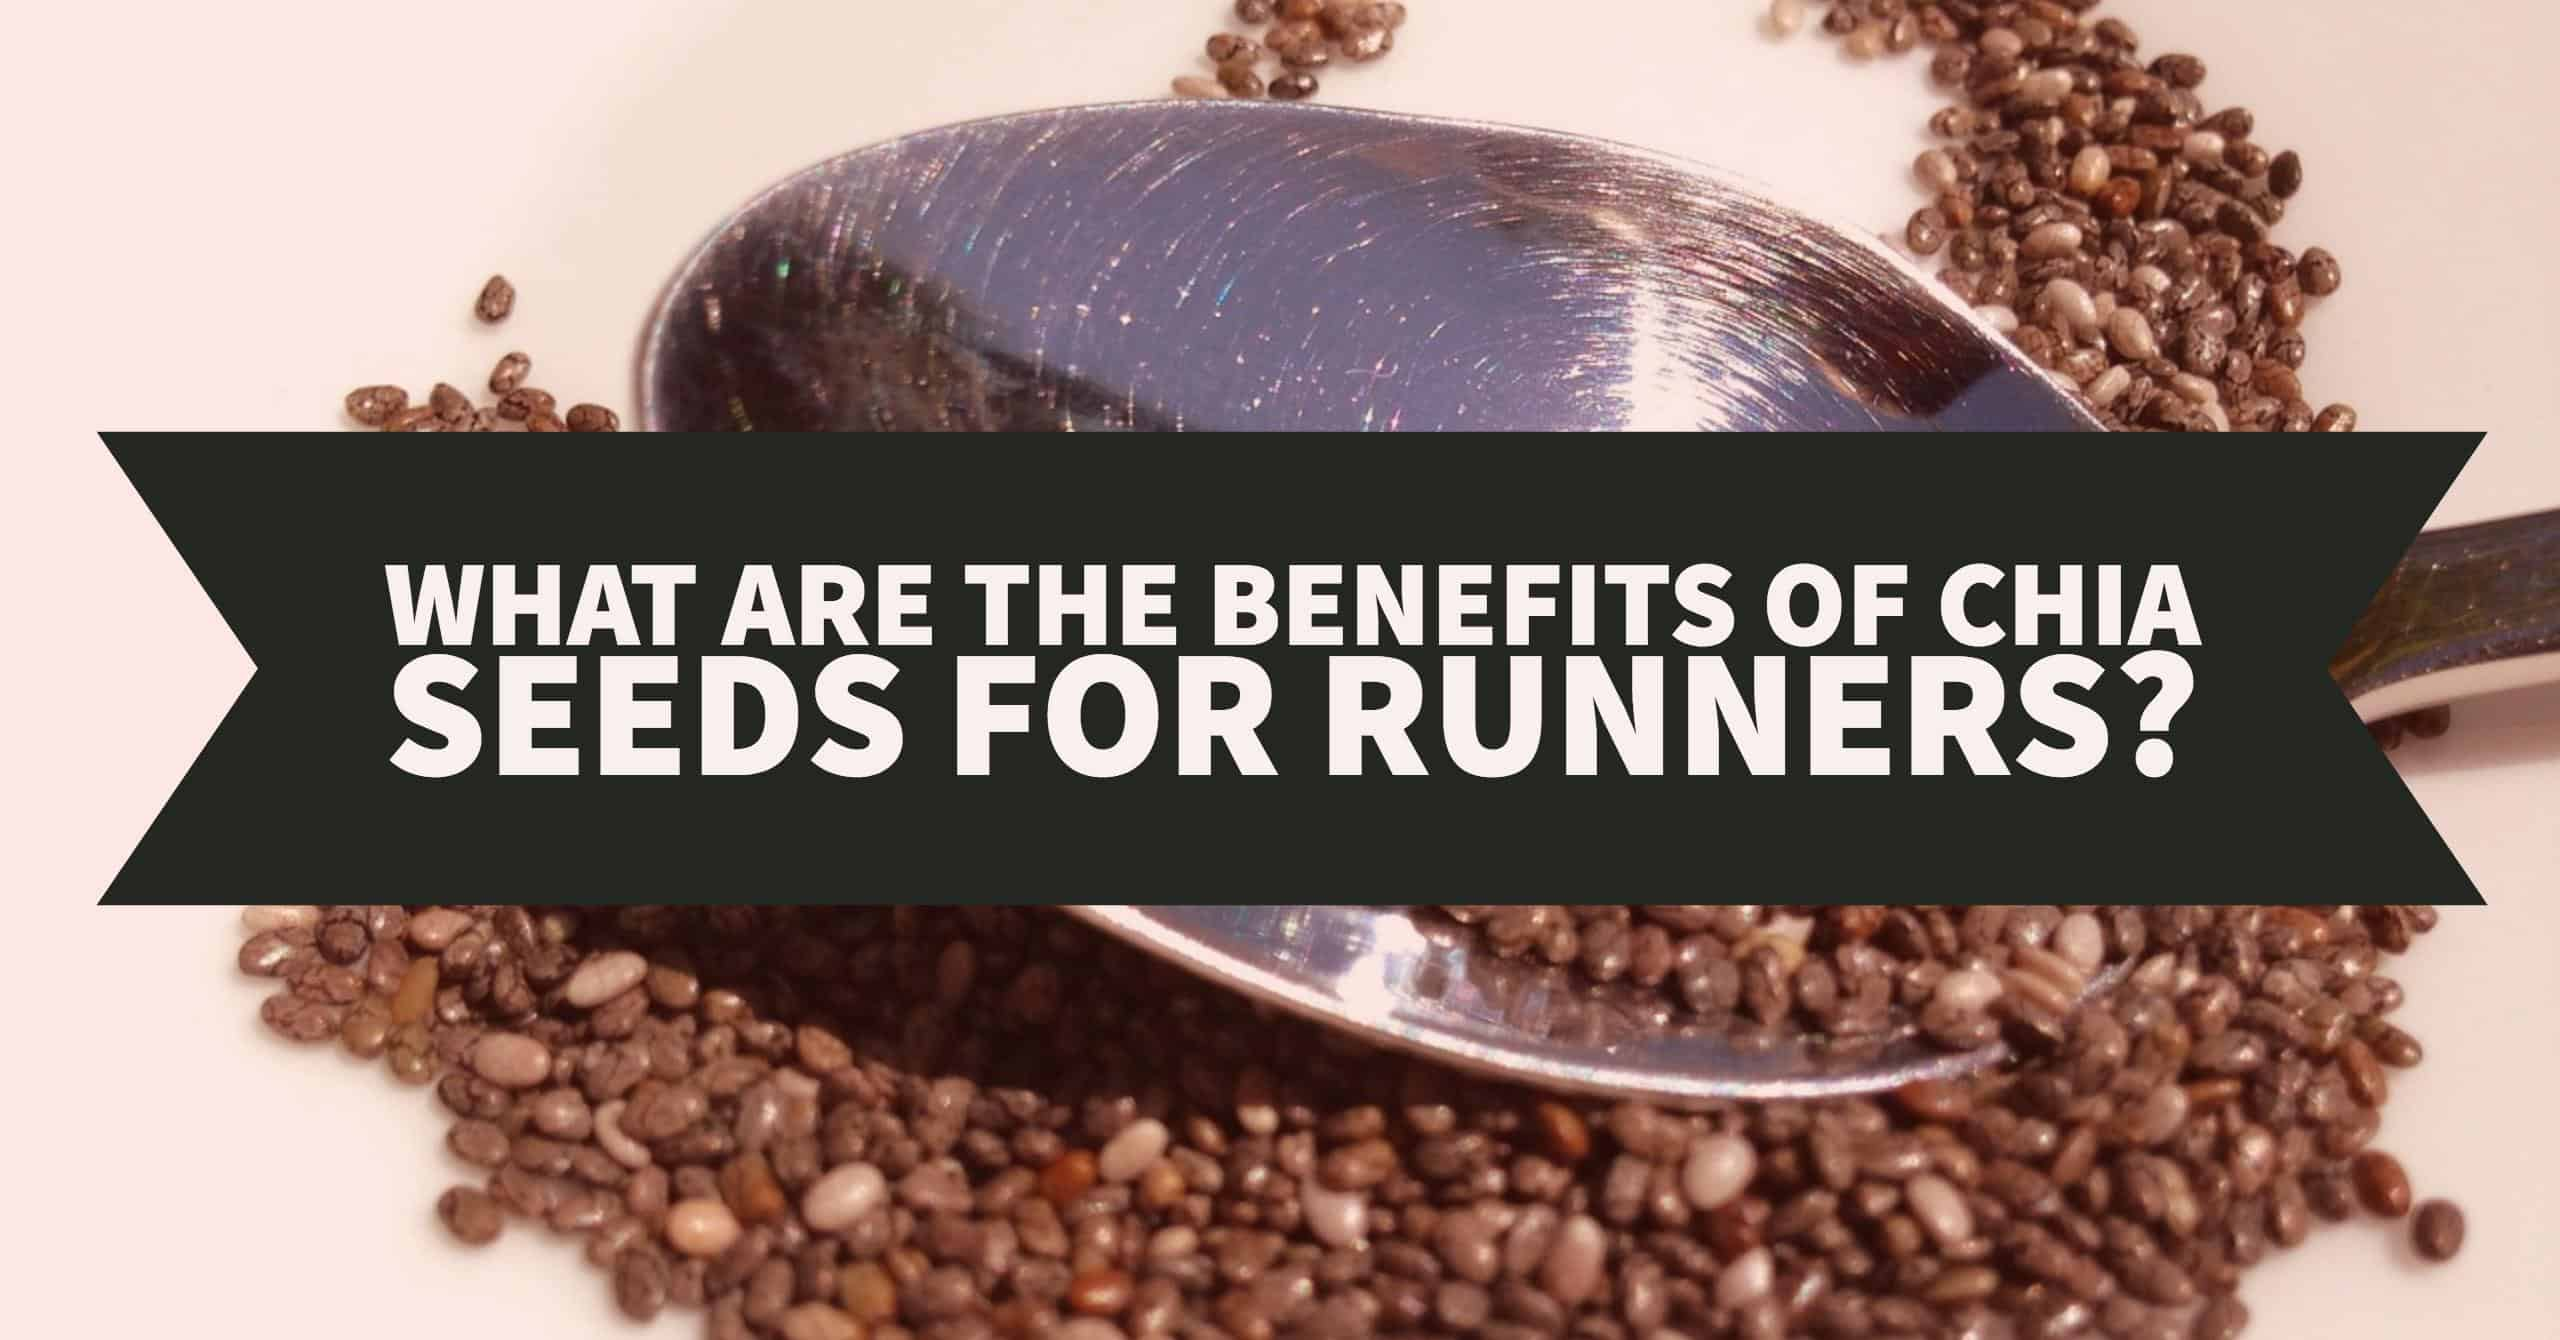 Chia Seeds are loaded with valueable nutirents. But what are the Benefits of Chia Seeds for Runners? We break down how these tiny seeds can make a big impact on your training and health.